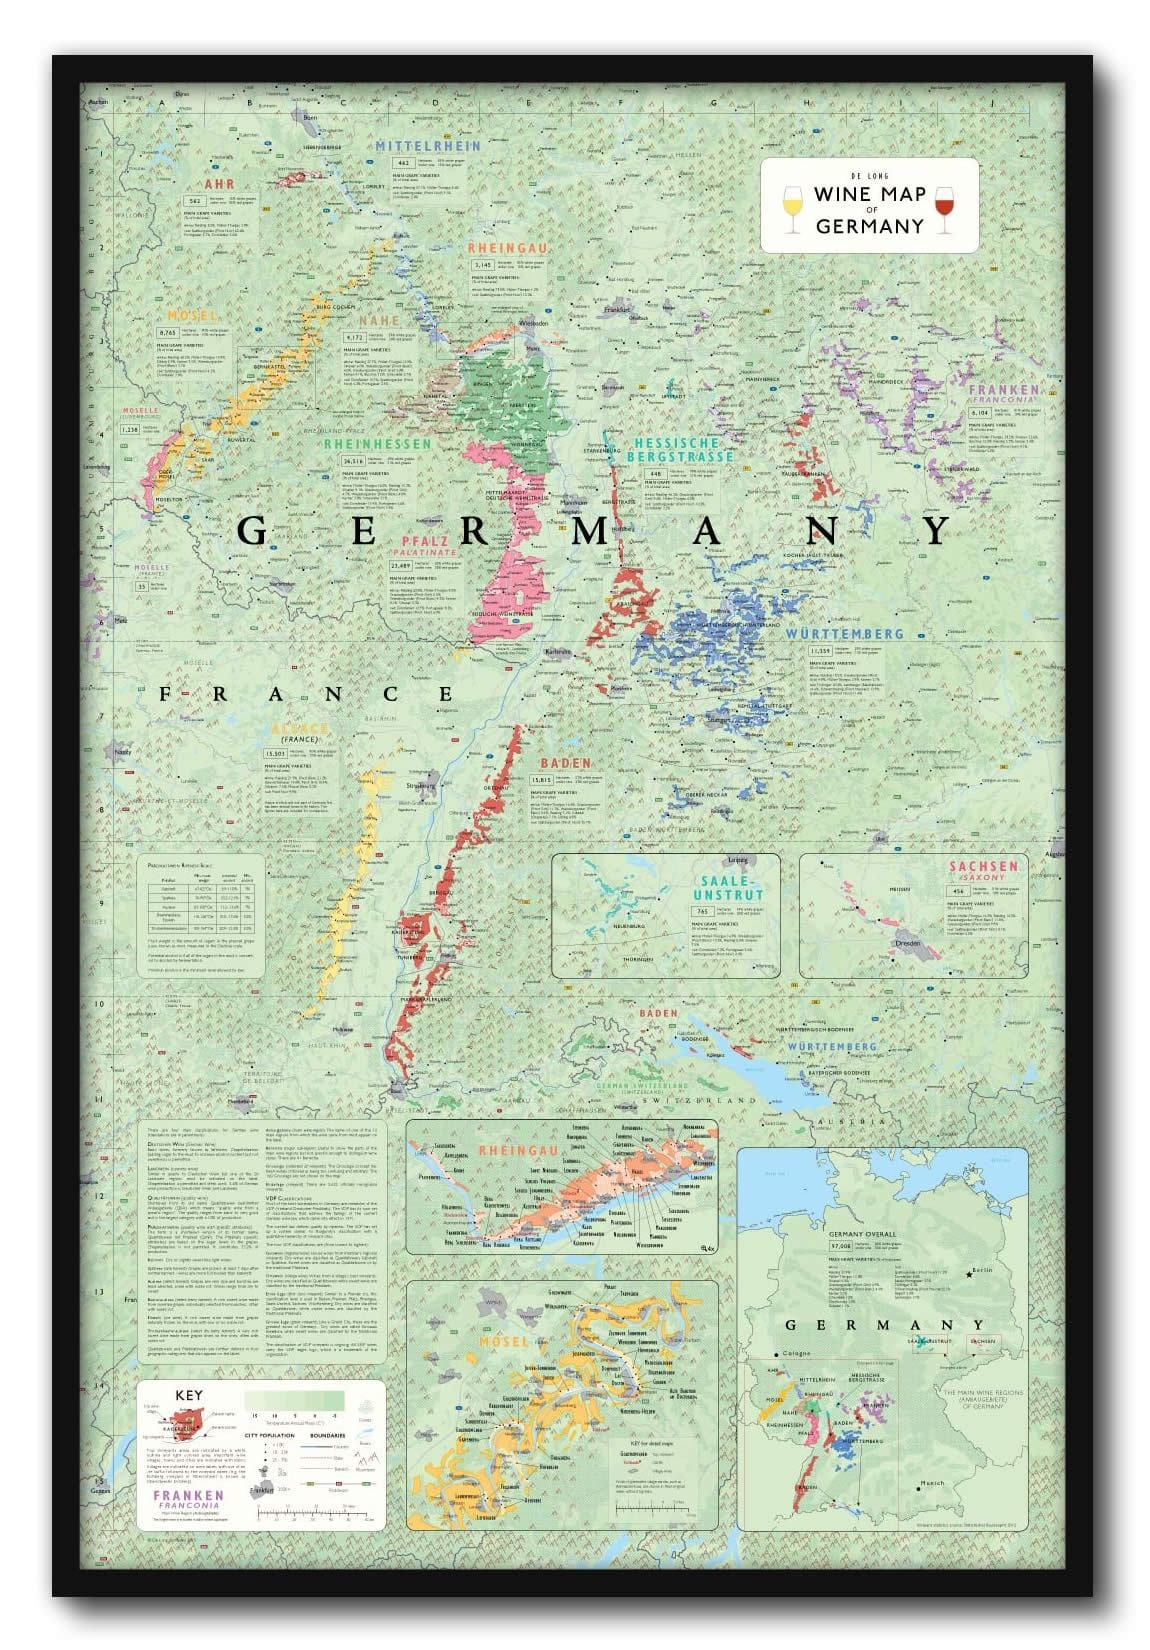 Show Map Of Germany.Wine Map Of Germany Framed De Long